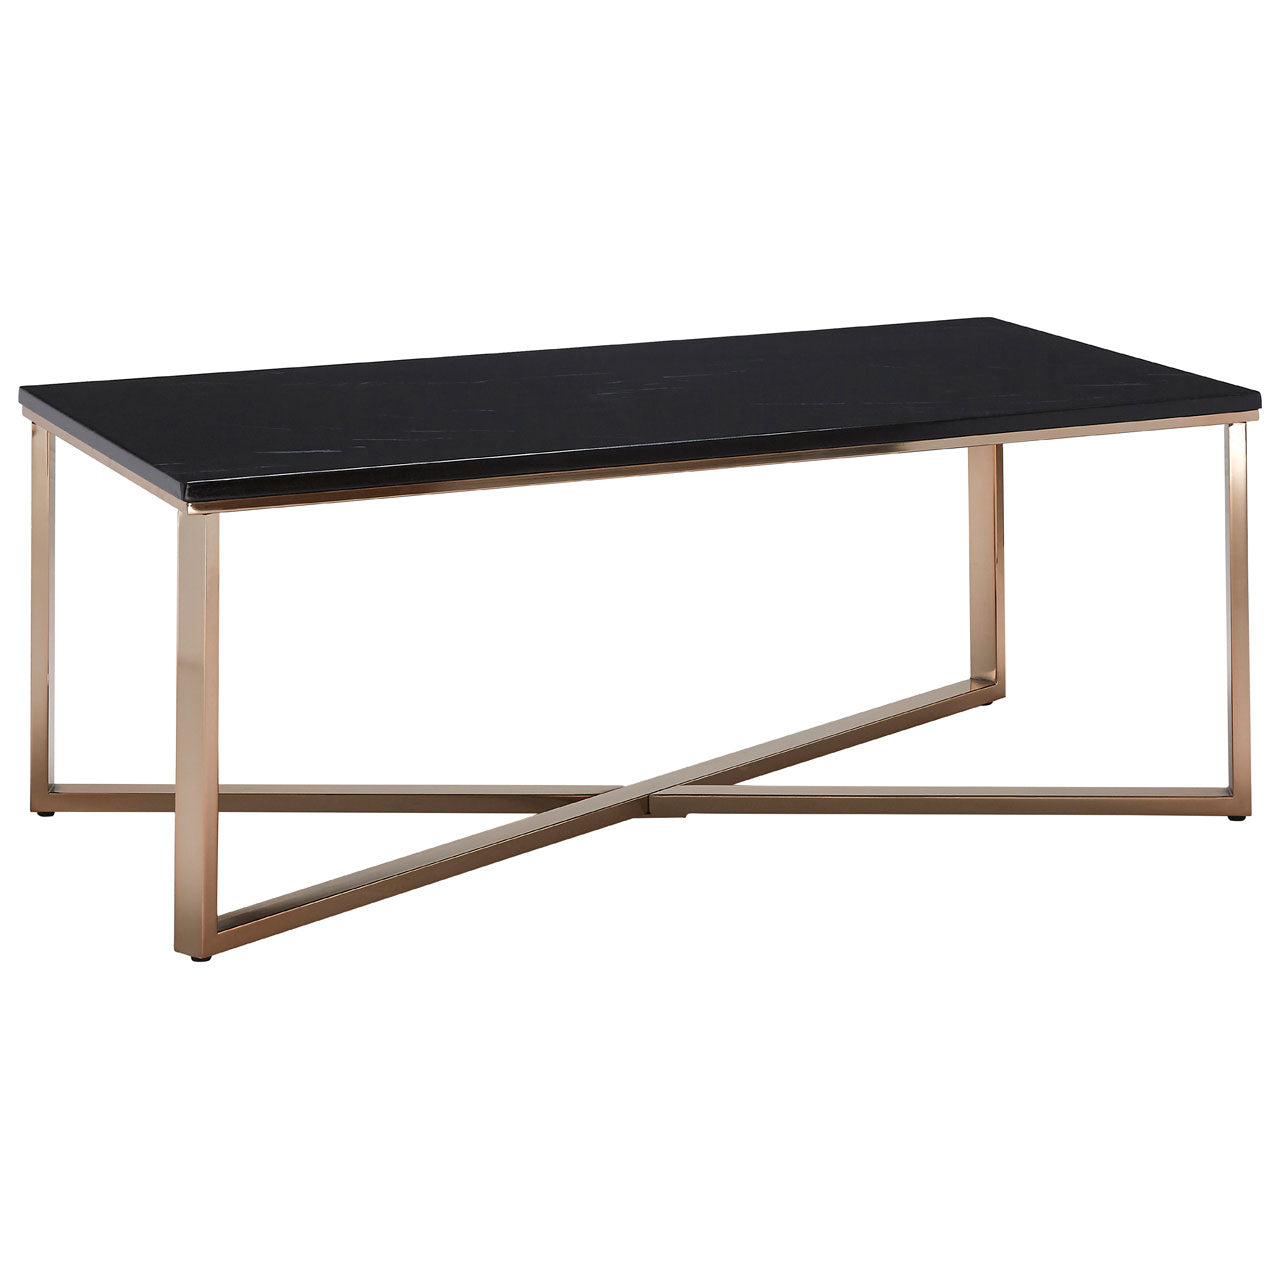 Allure Rectangular Coffee Table Champagne Gold with Black Marble - Ezzo